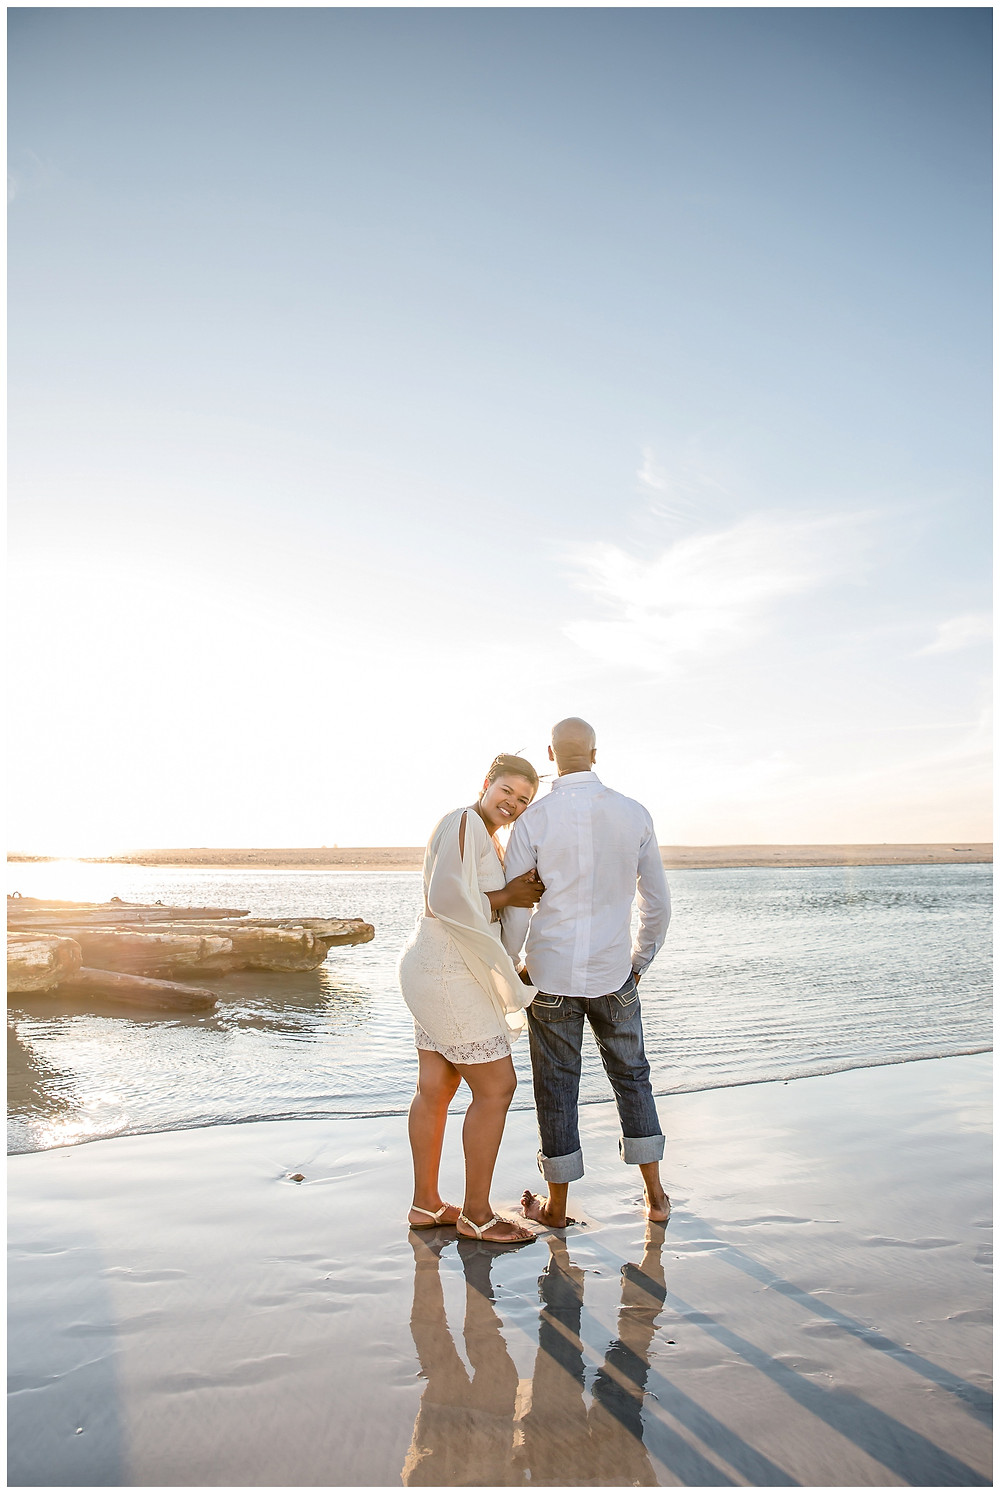 Engagement shoot at Lagoon beach by Jaqui Franco Photography Cape Town